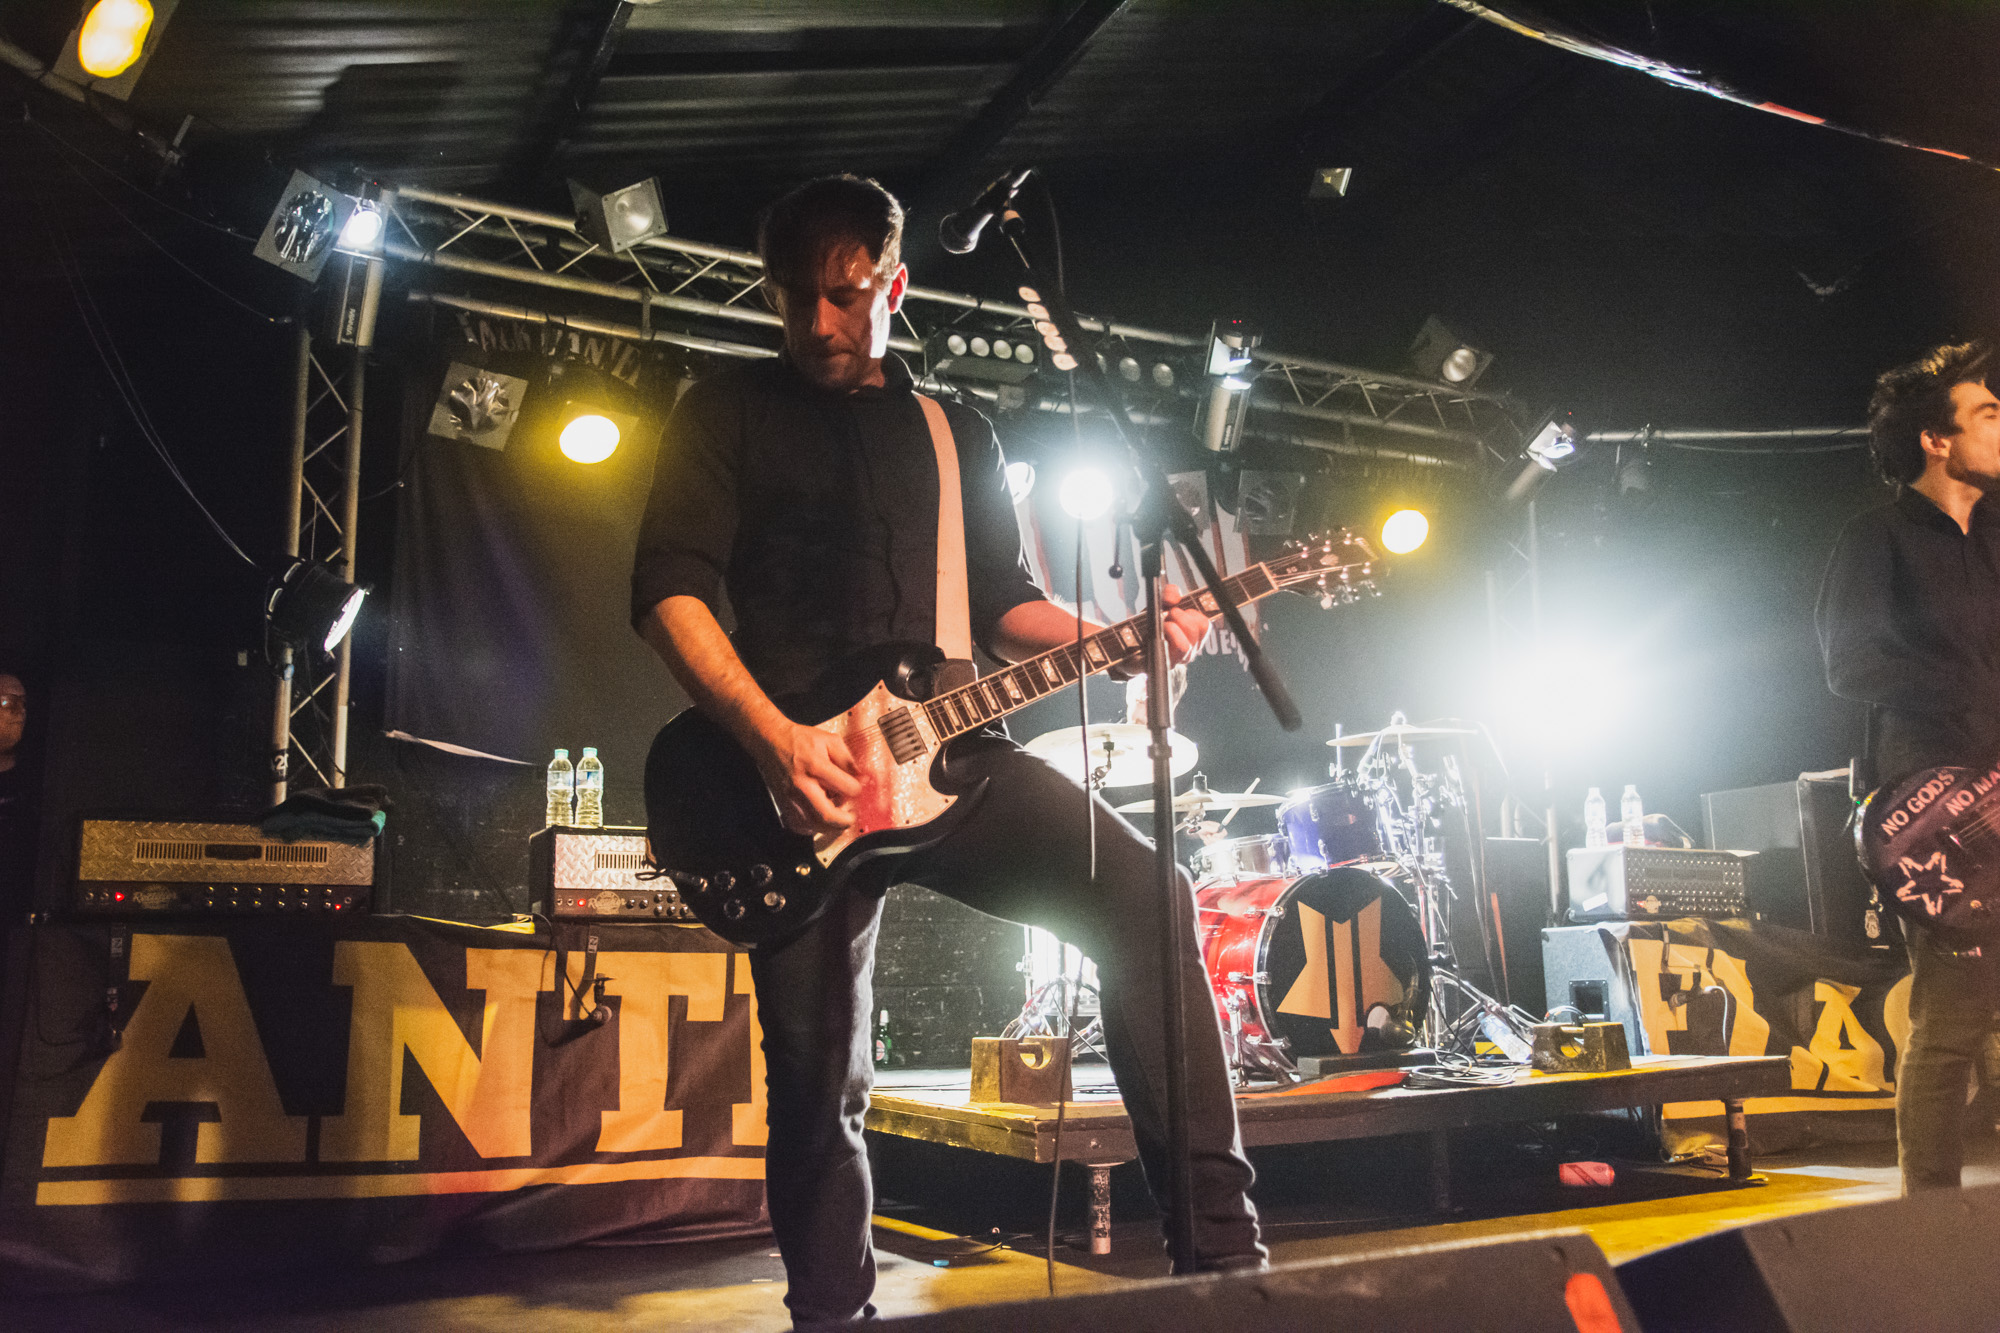 Anti-Flag-The-Asylum-Birmingham_20181030_05.jpg